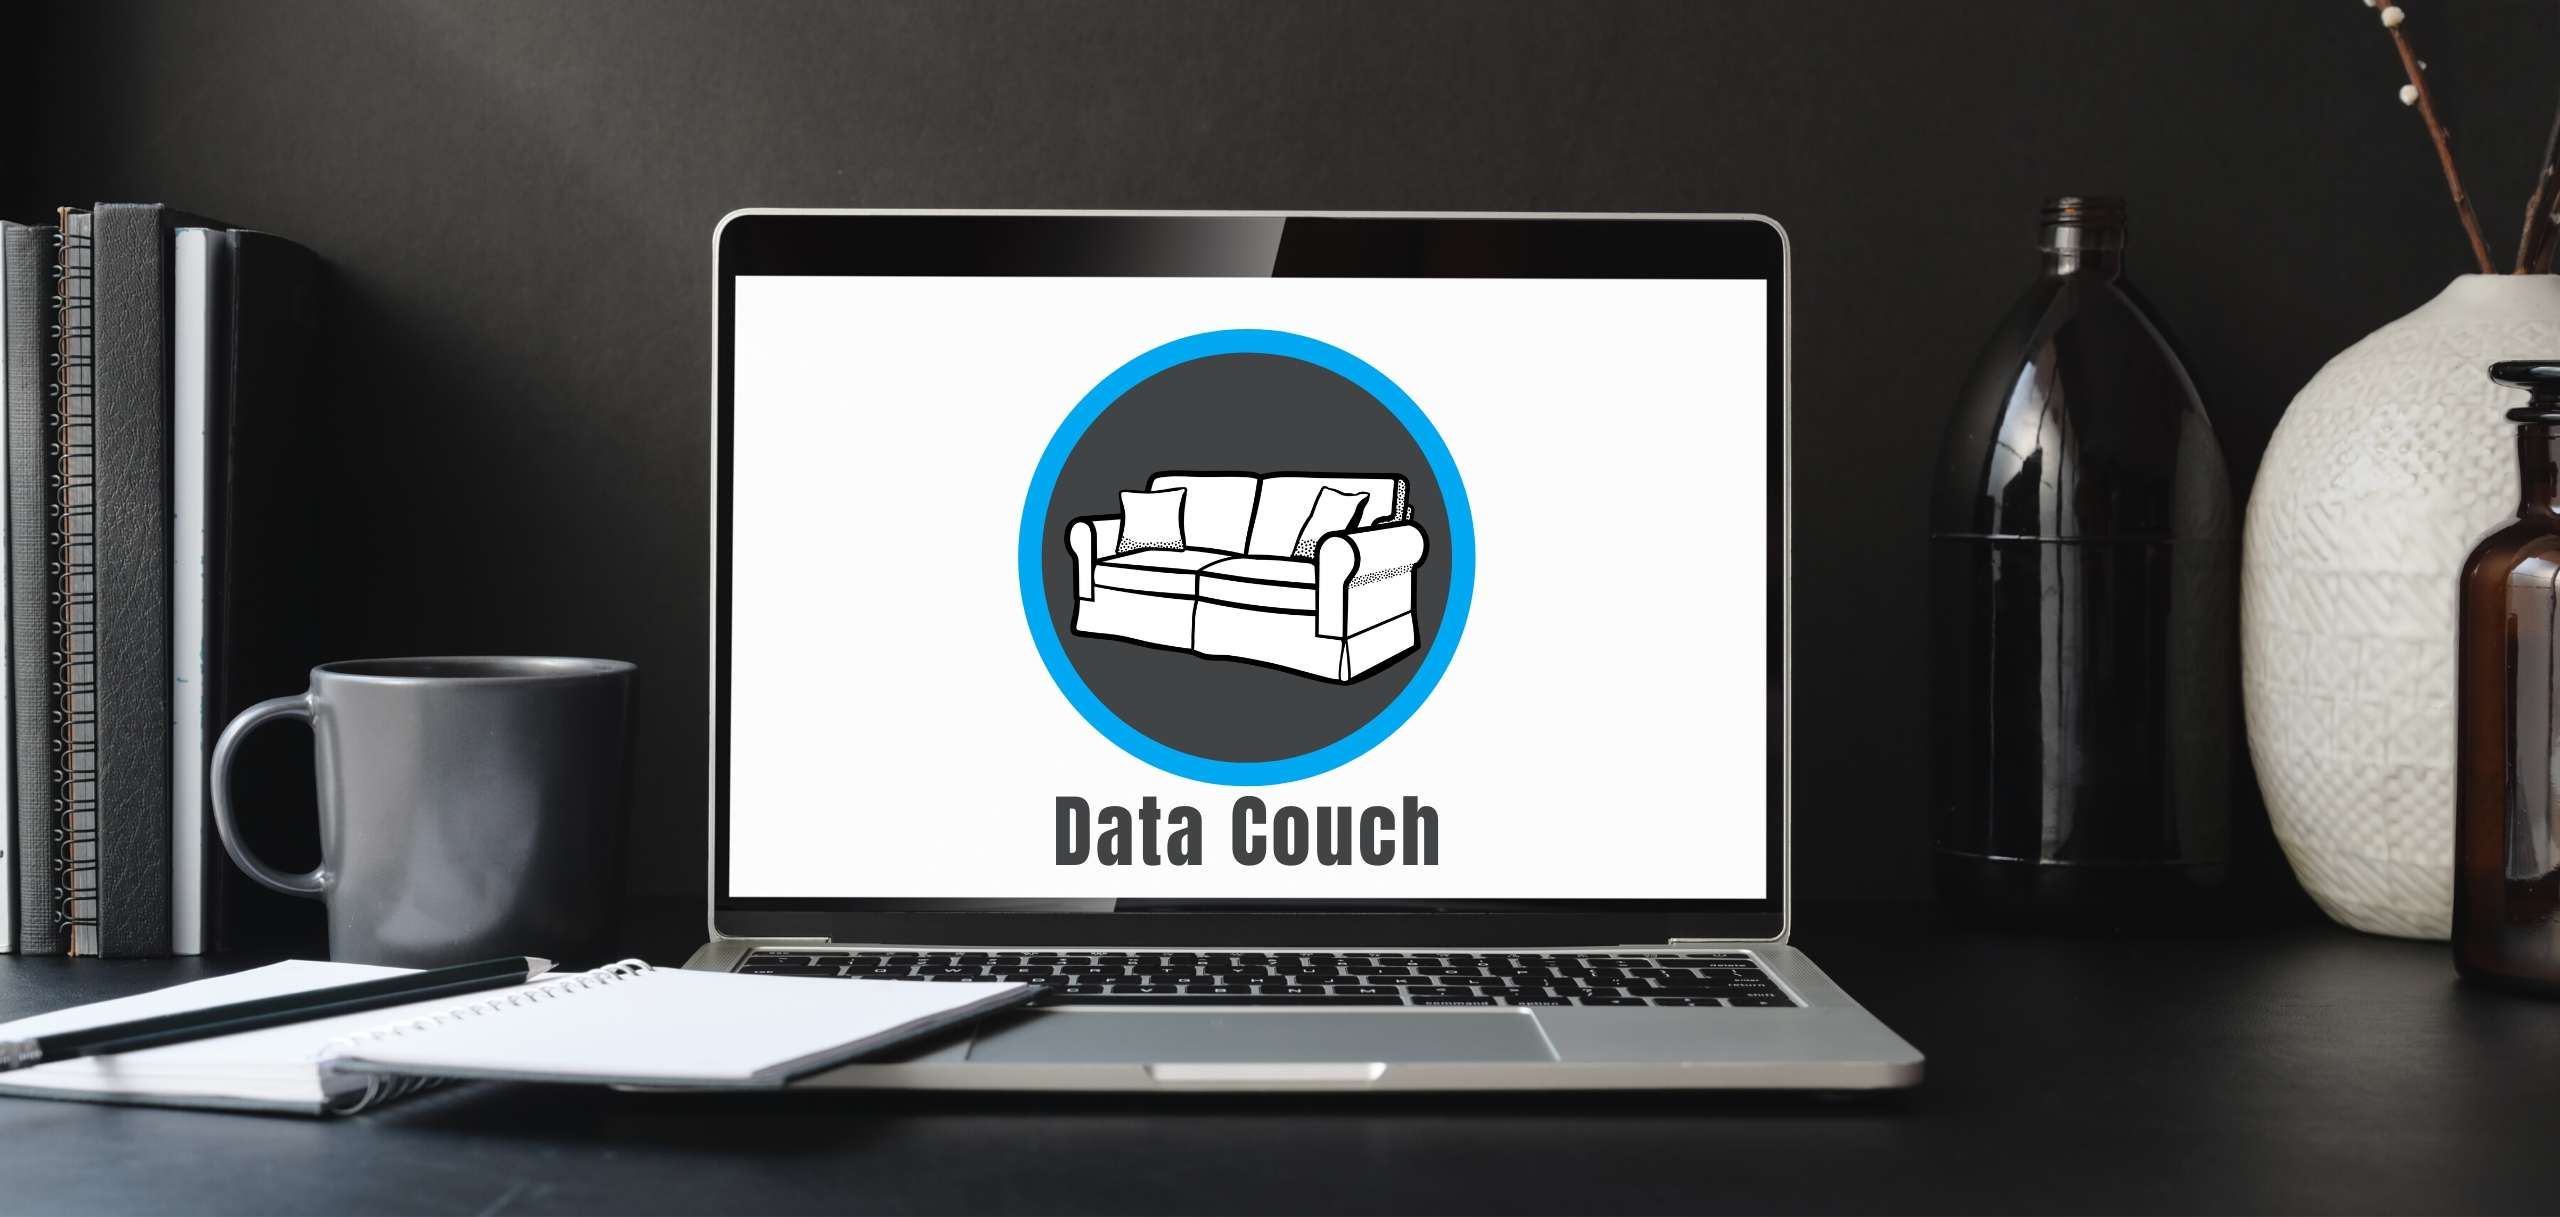 Welcome to the Data Couch website